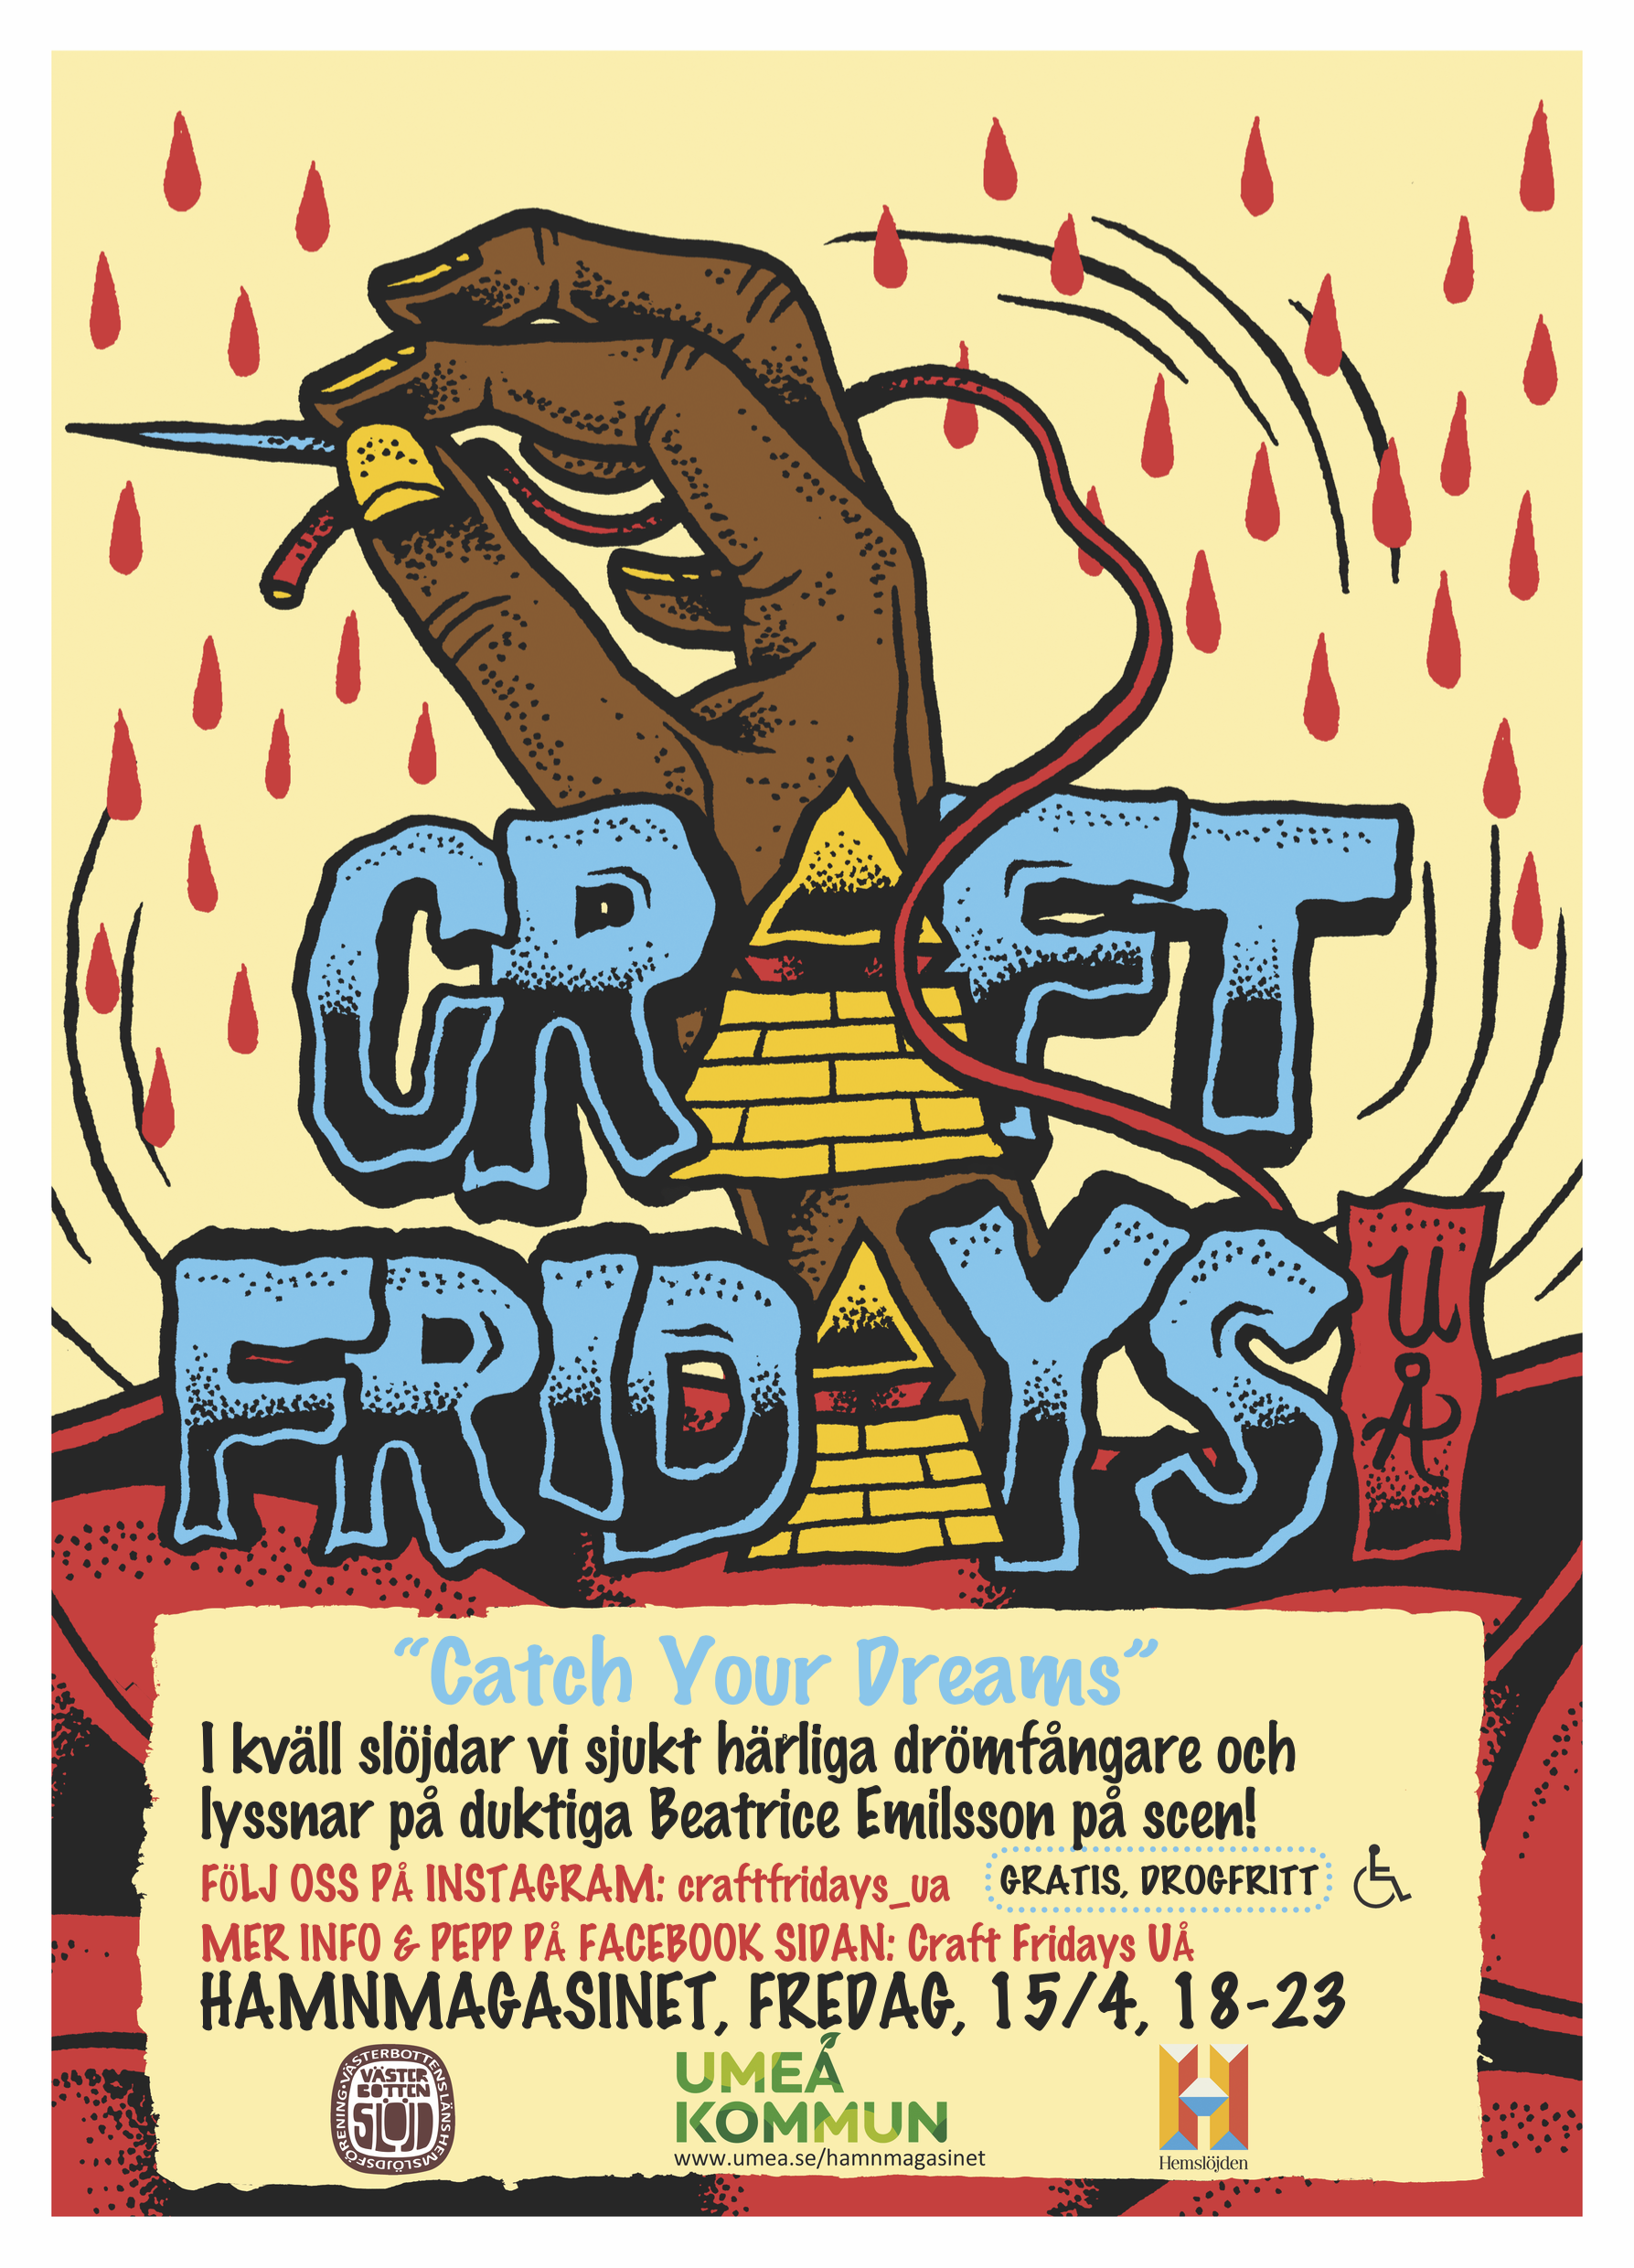 Nästa Craft Fridays UÅ den 15/4